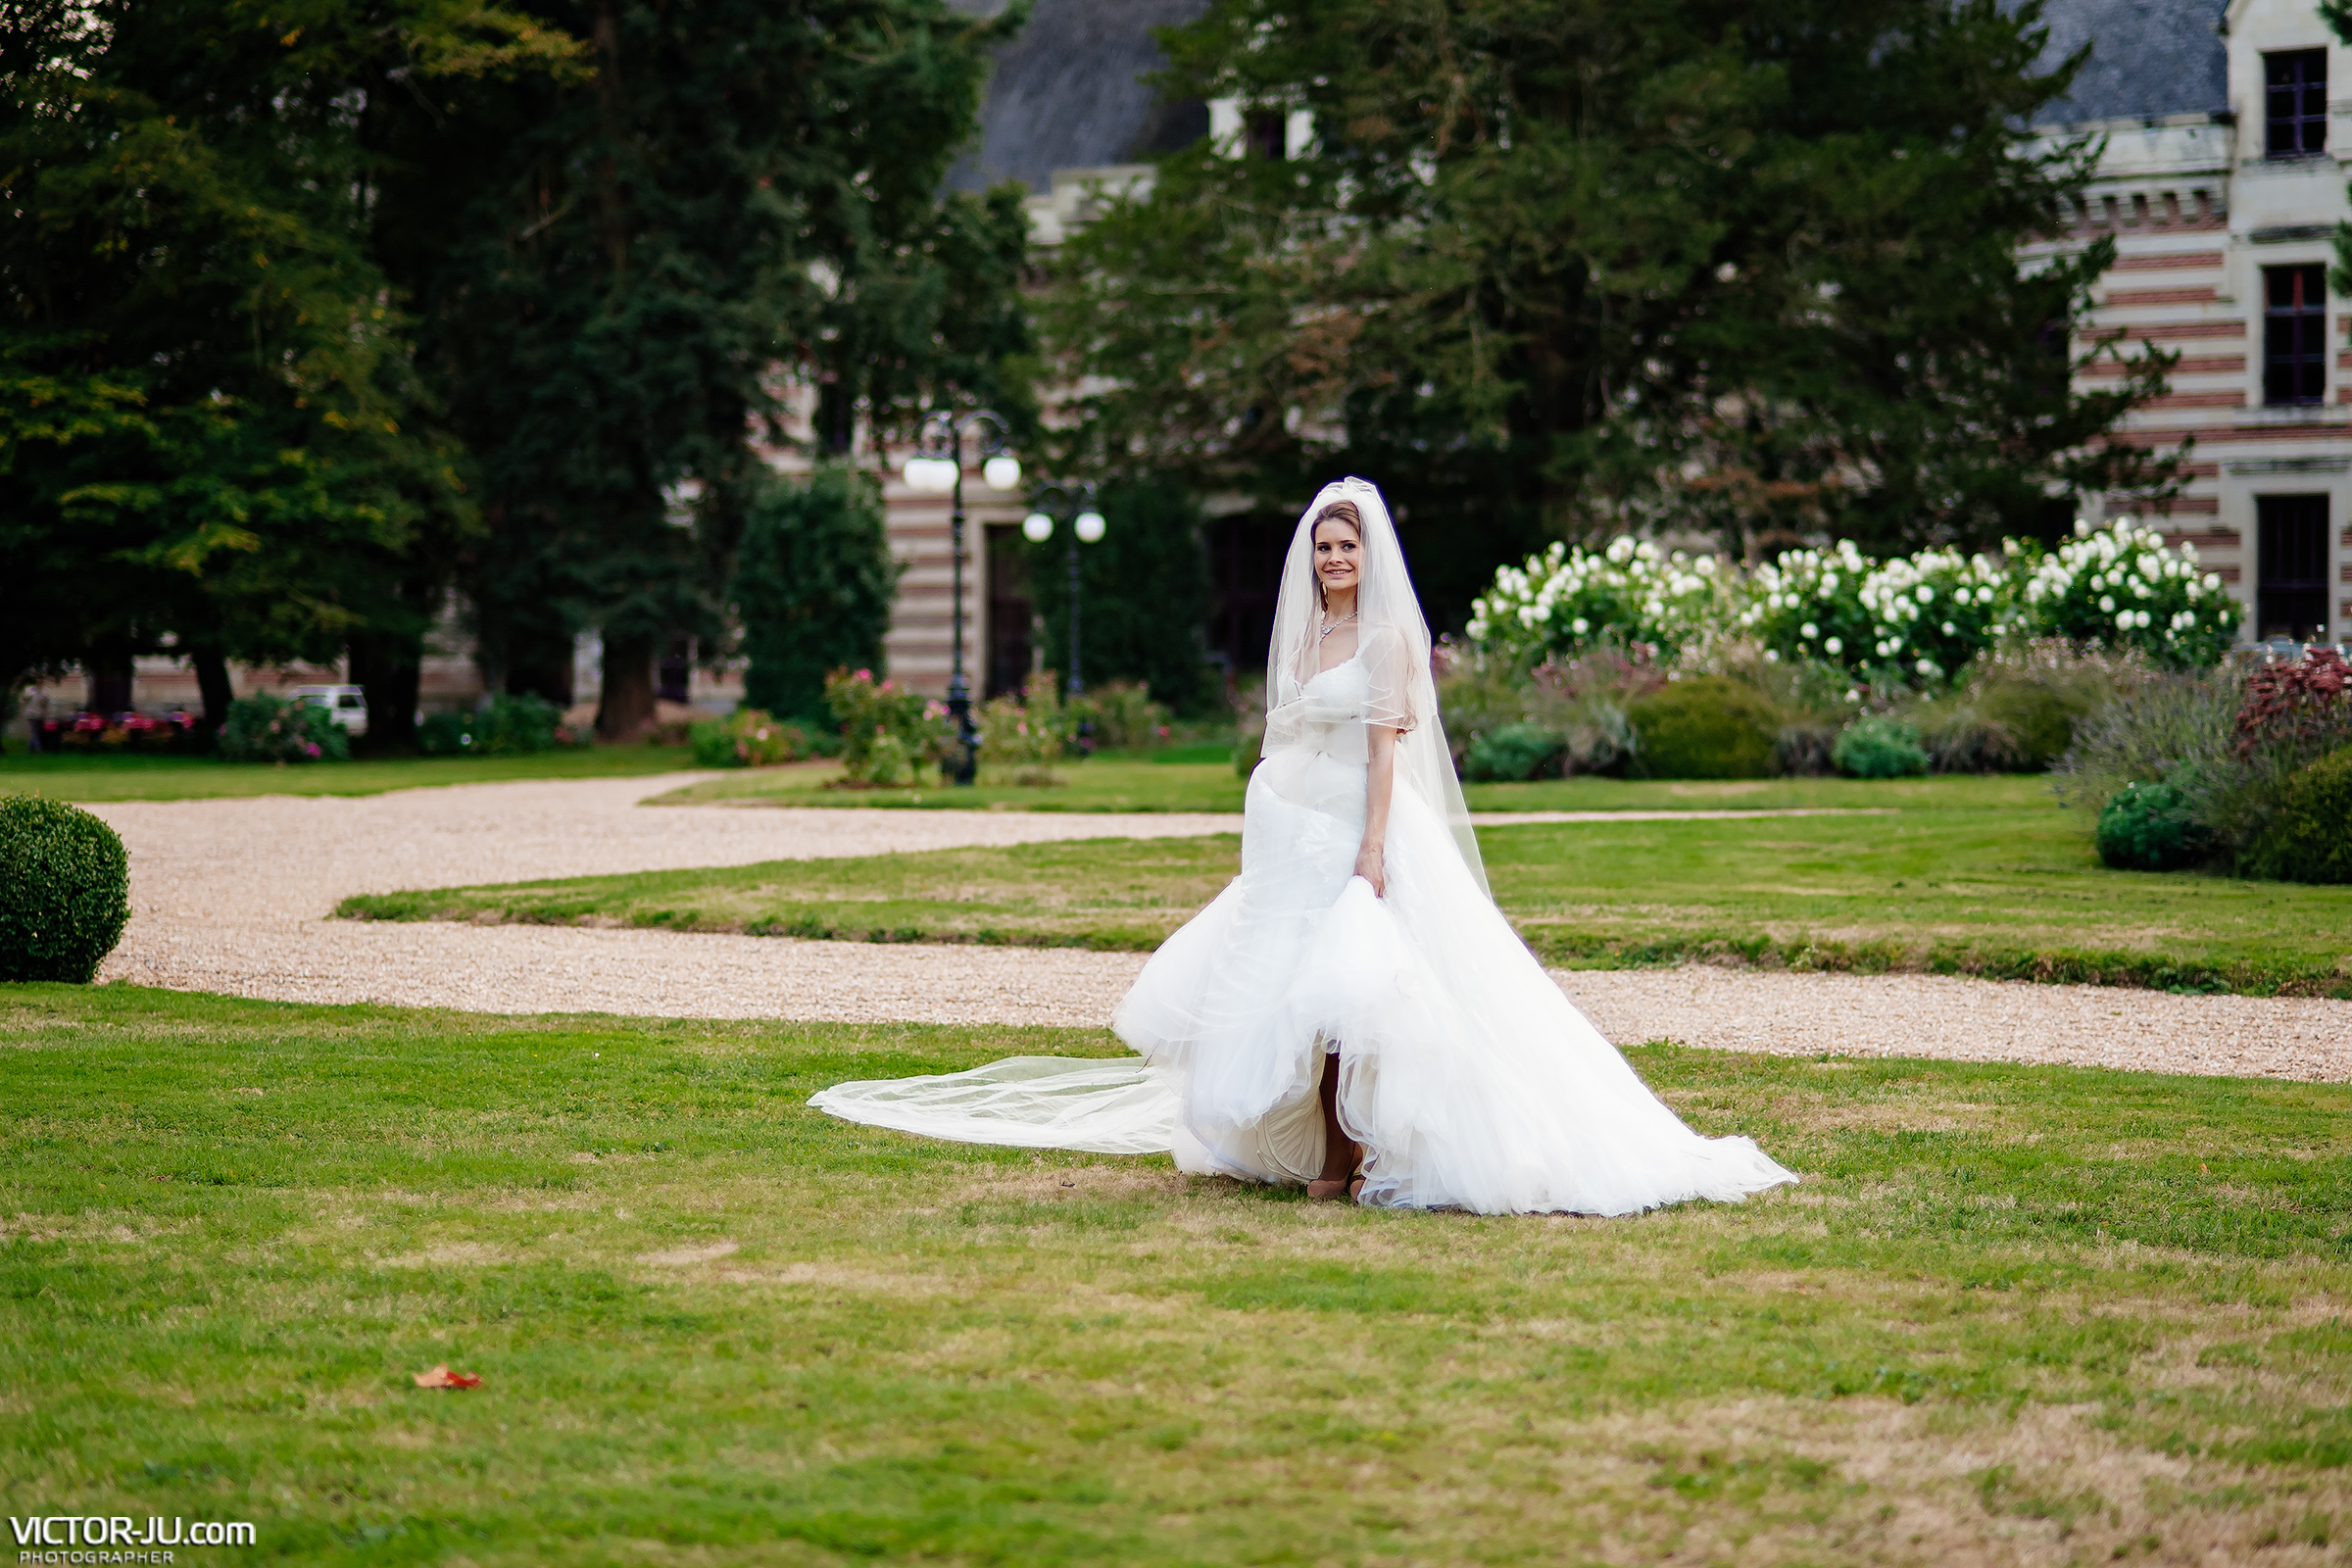 Photographer for a wedding in France